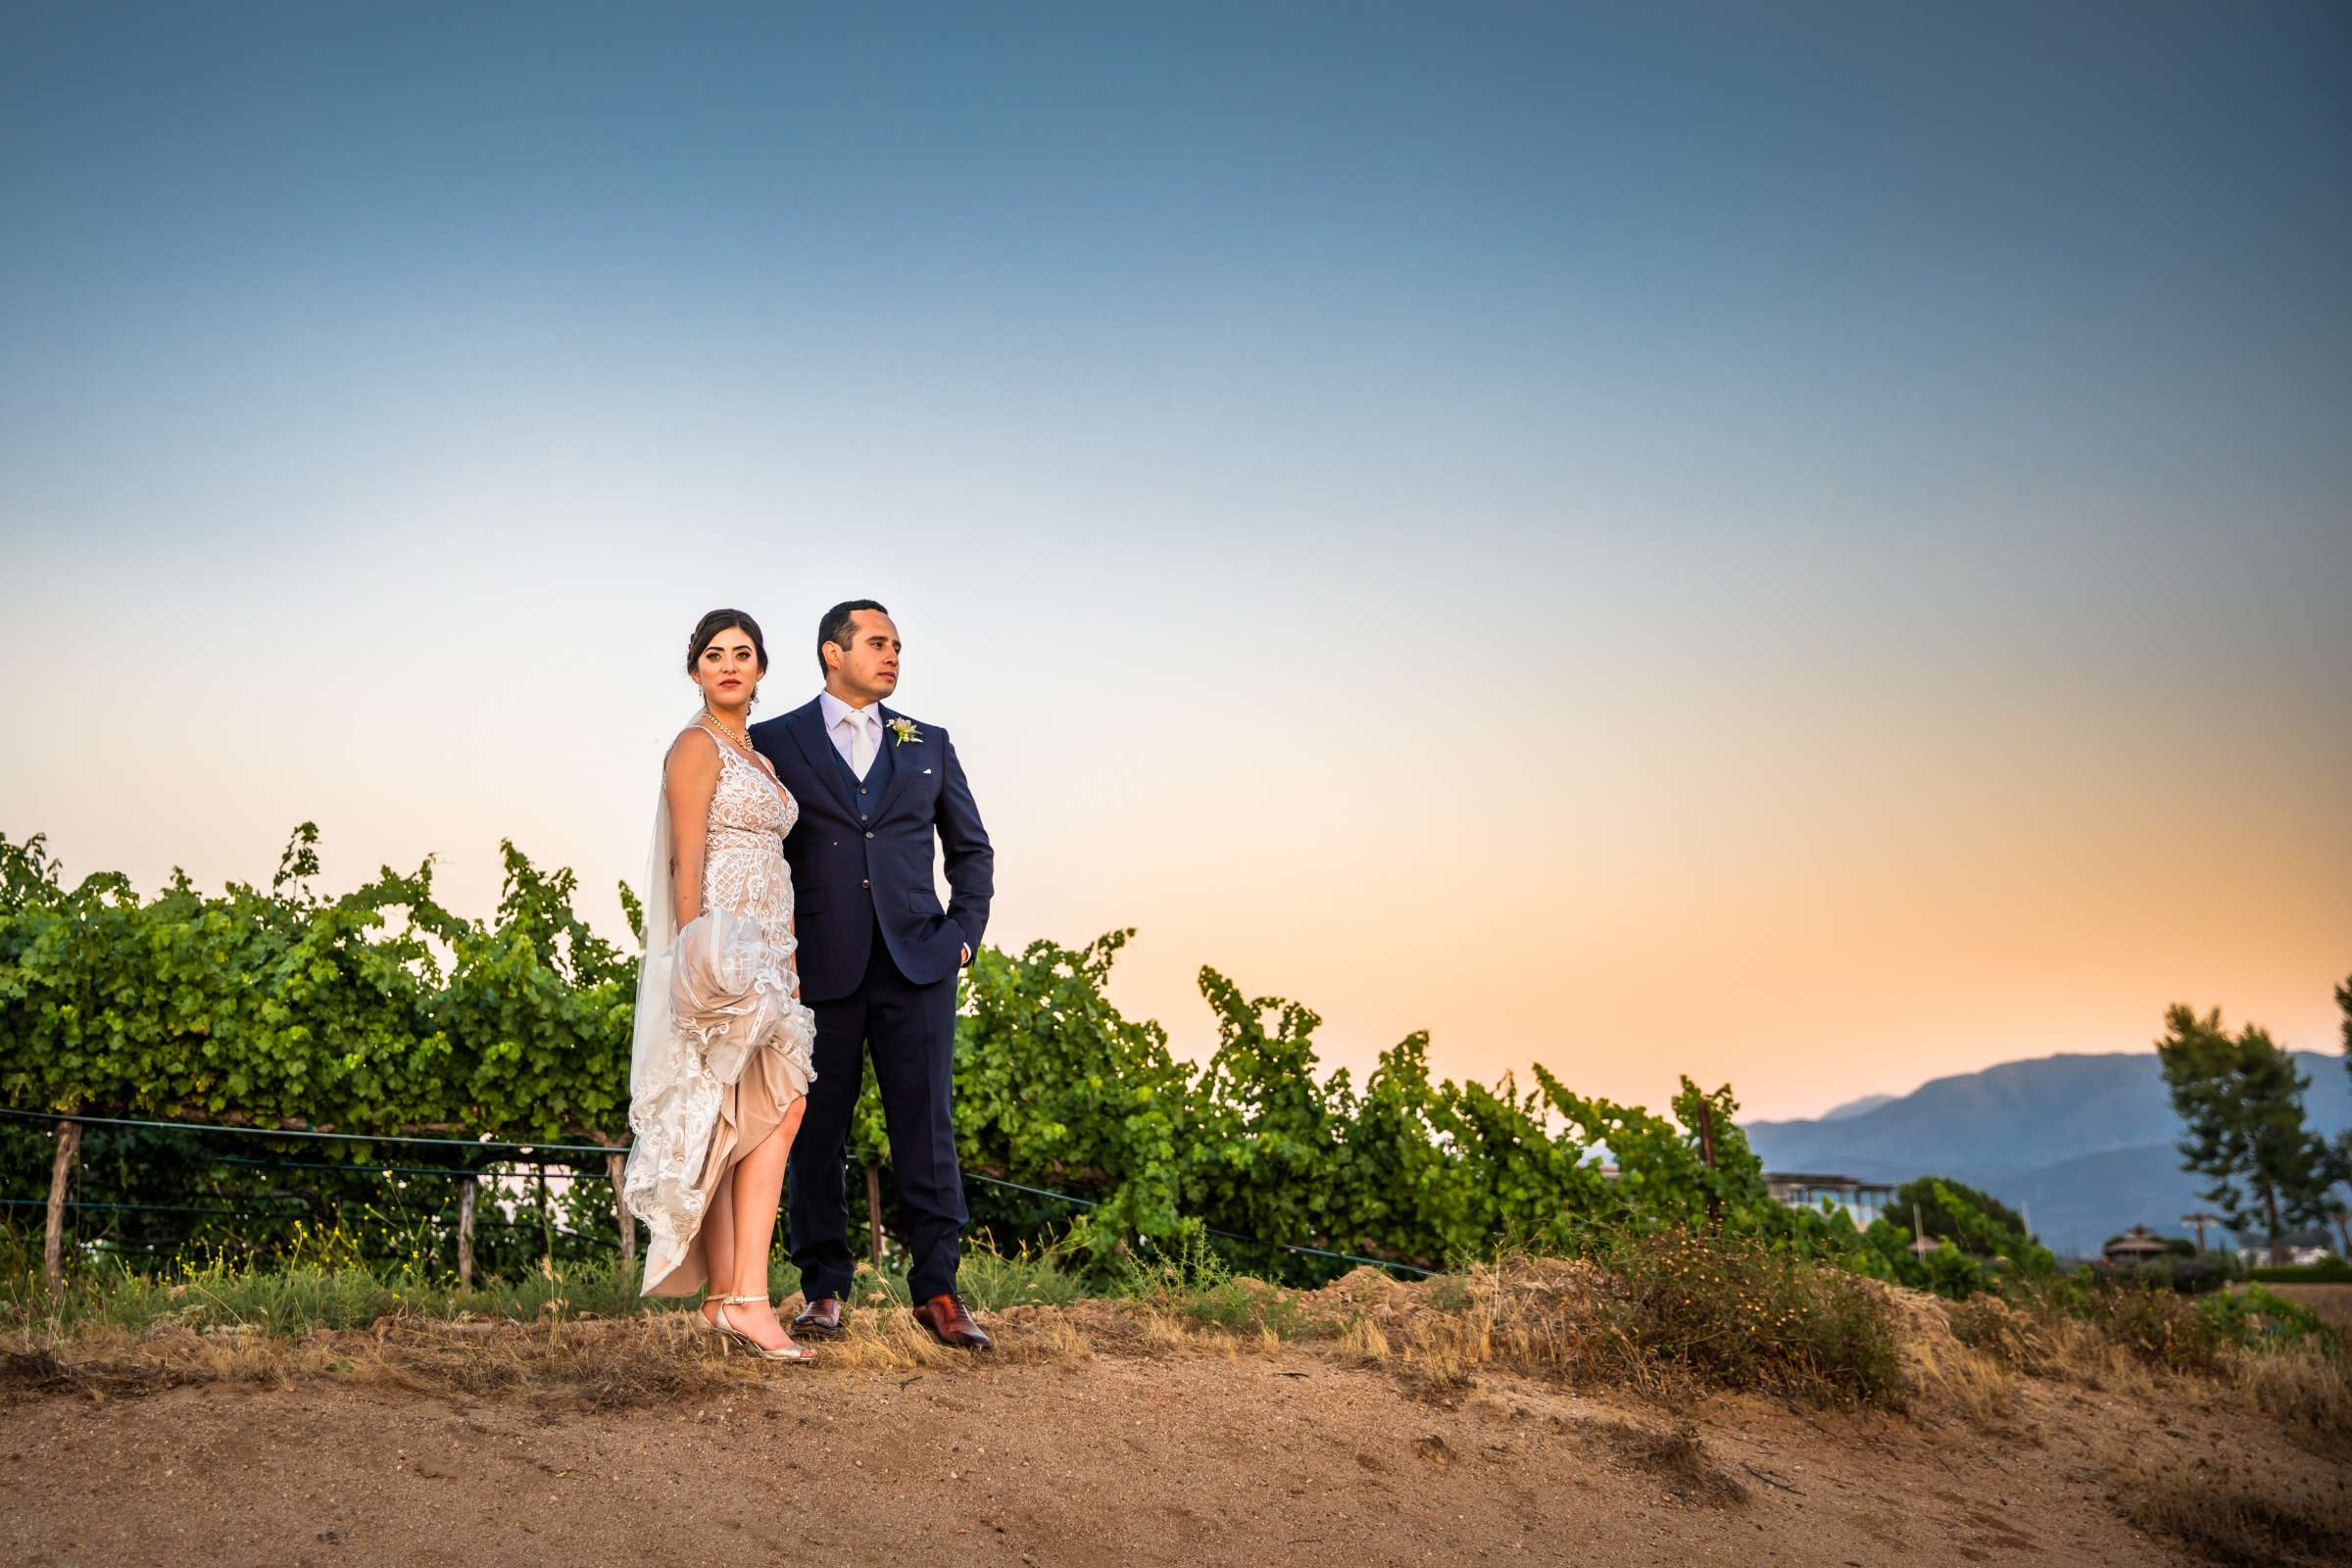 Callaway Vineyards & Winery Wedding coordinated by Michelle Garibay Events, Chelsea and Luis carlos Wedding Photo #19 by True Photography